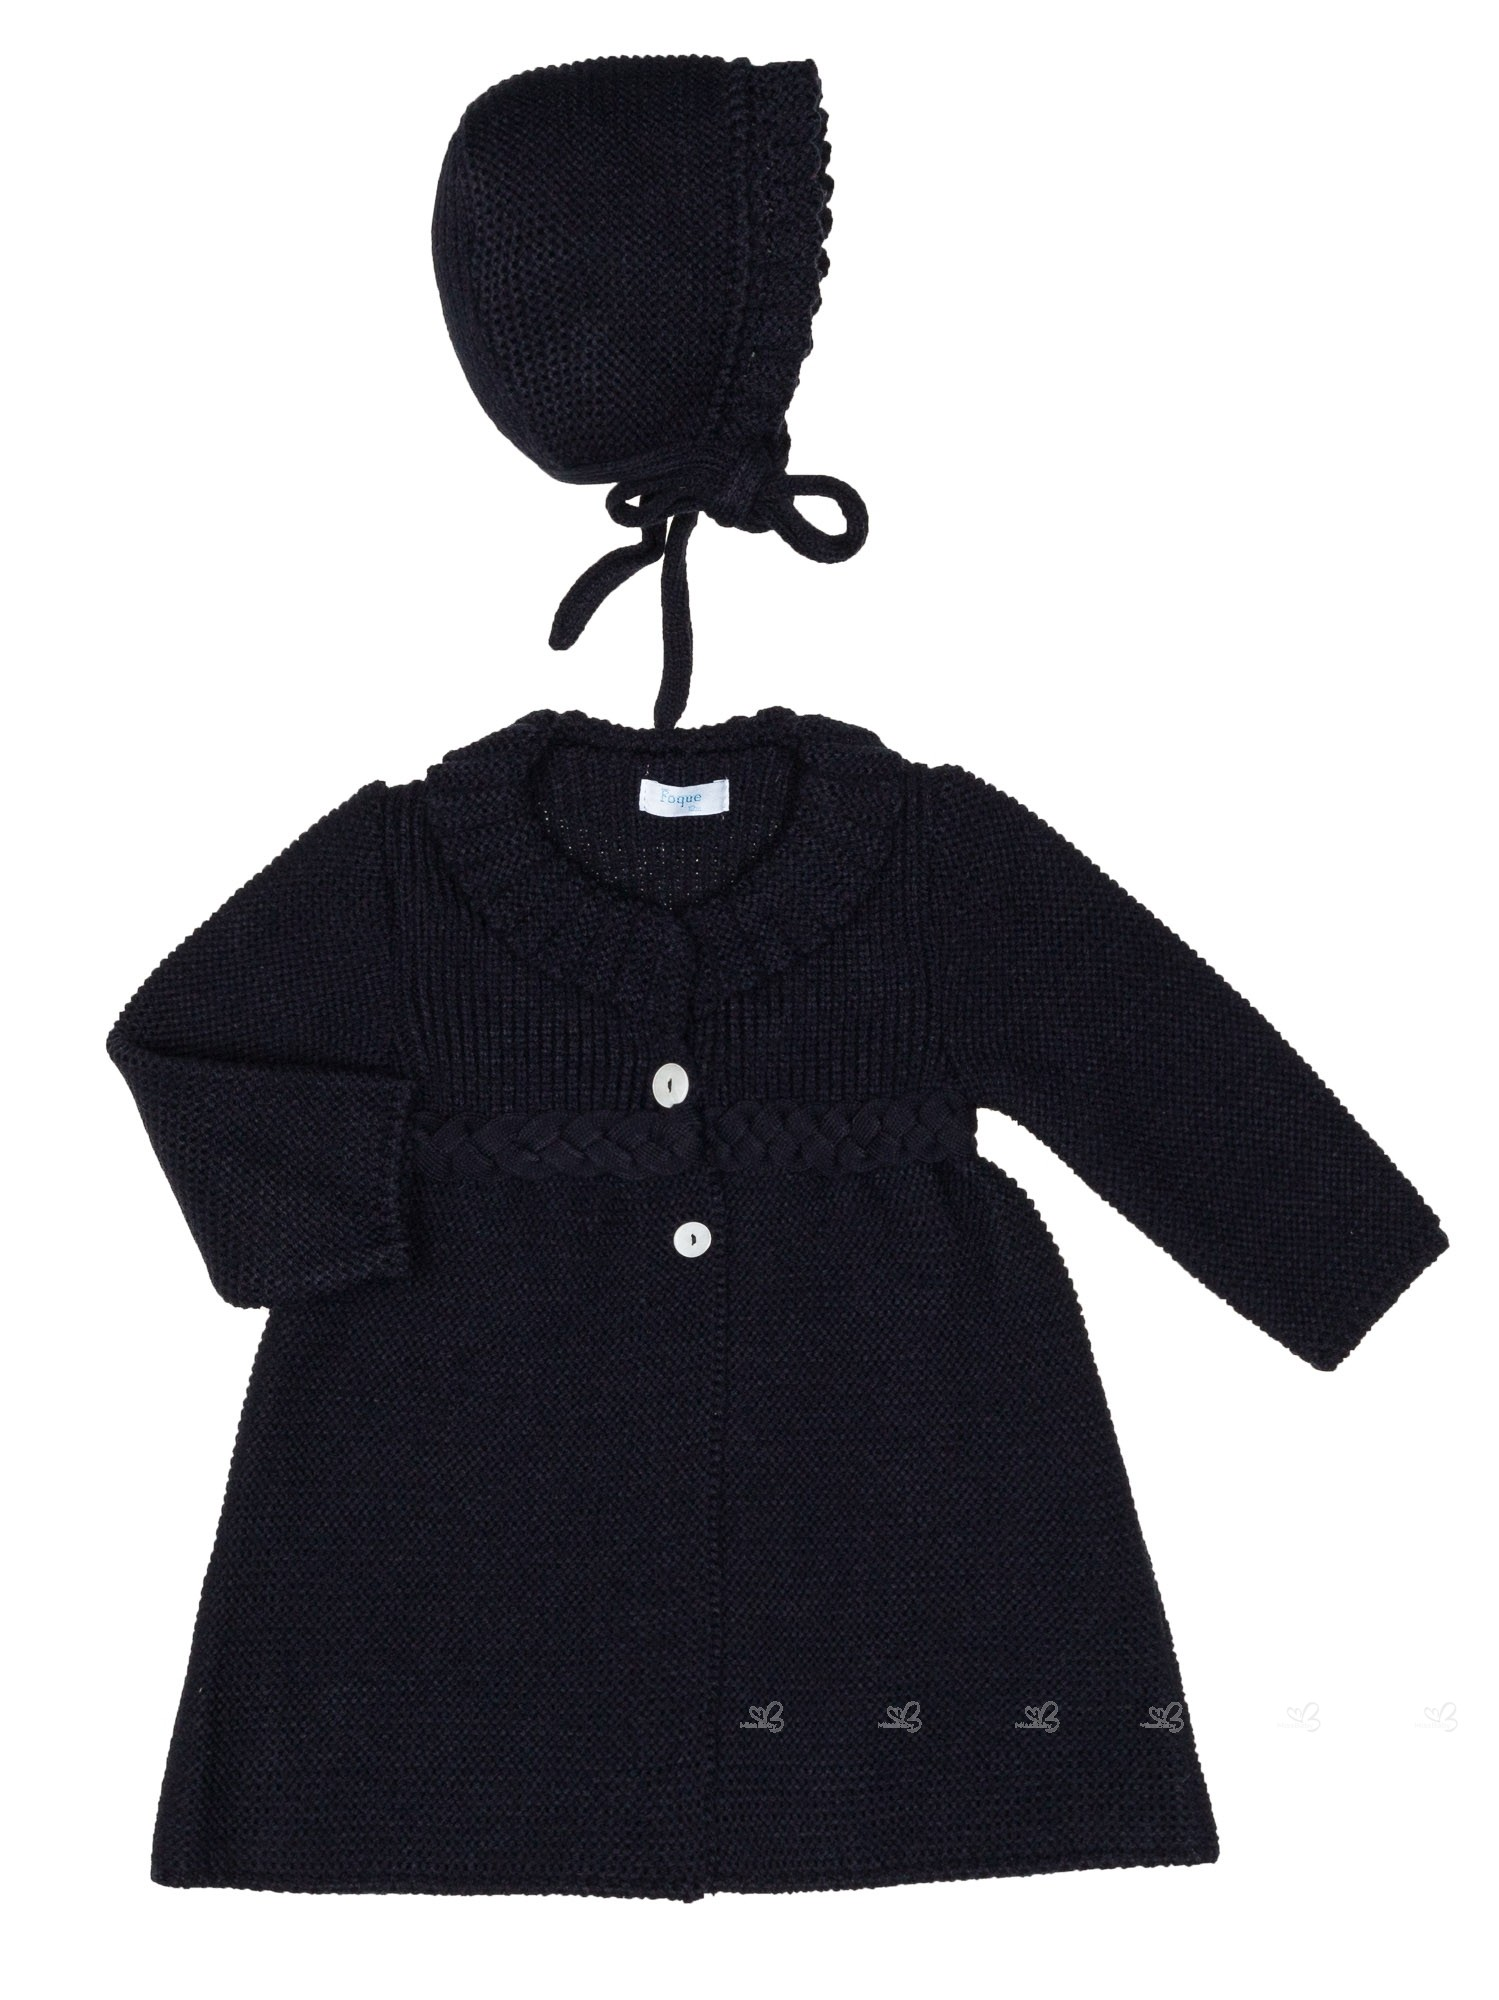 f0d2d4194 Navy Blue Knitted Pram Coat   Bonnet Set